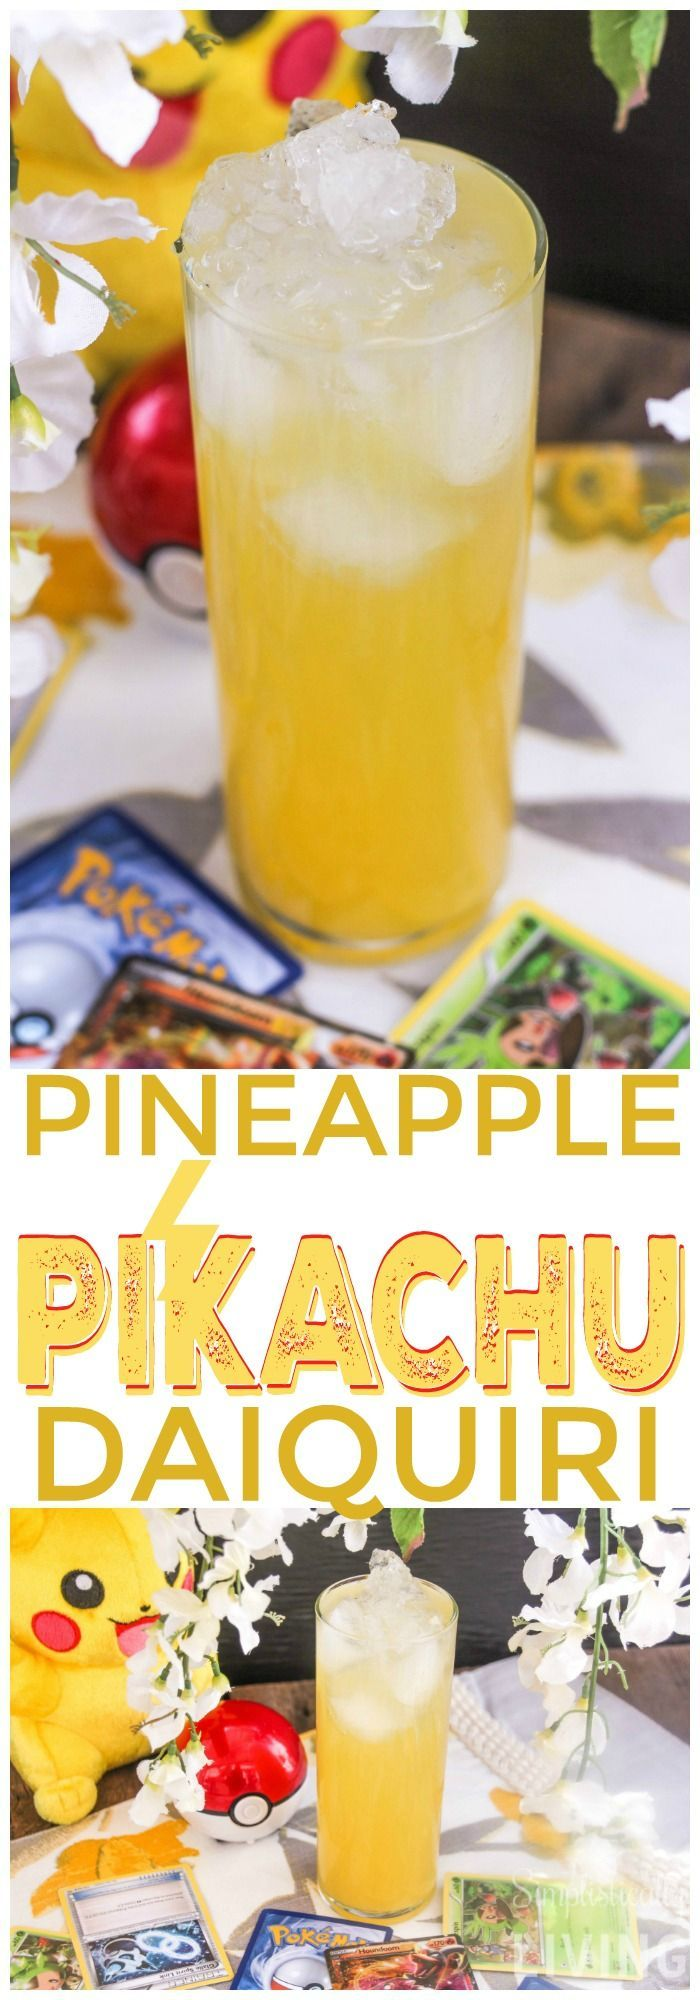 Pineapple Pikachu Daiquiri recipe - I need this after a long day of playing Pokemon Go!